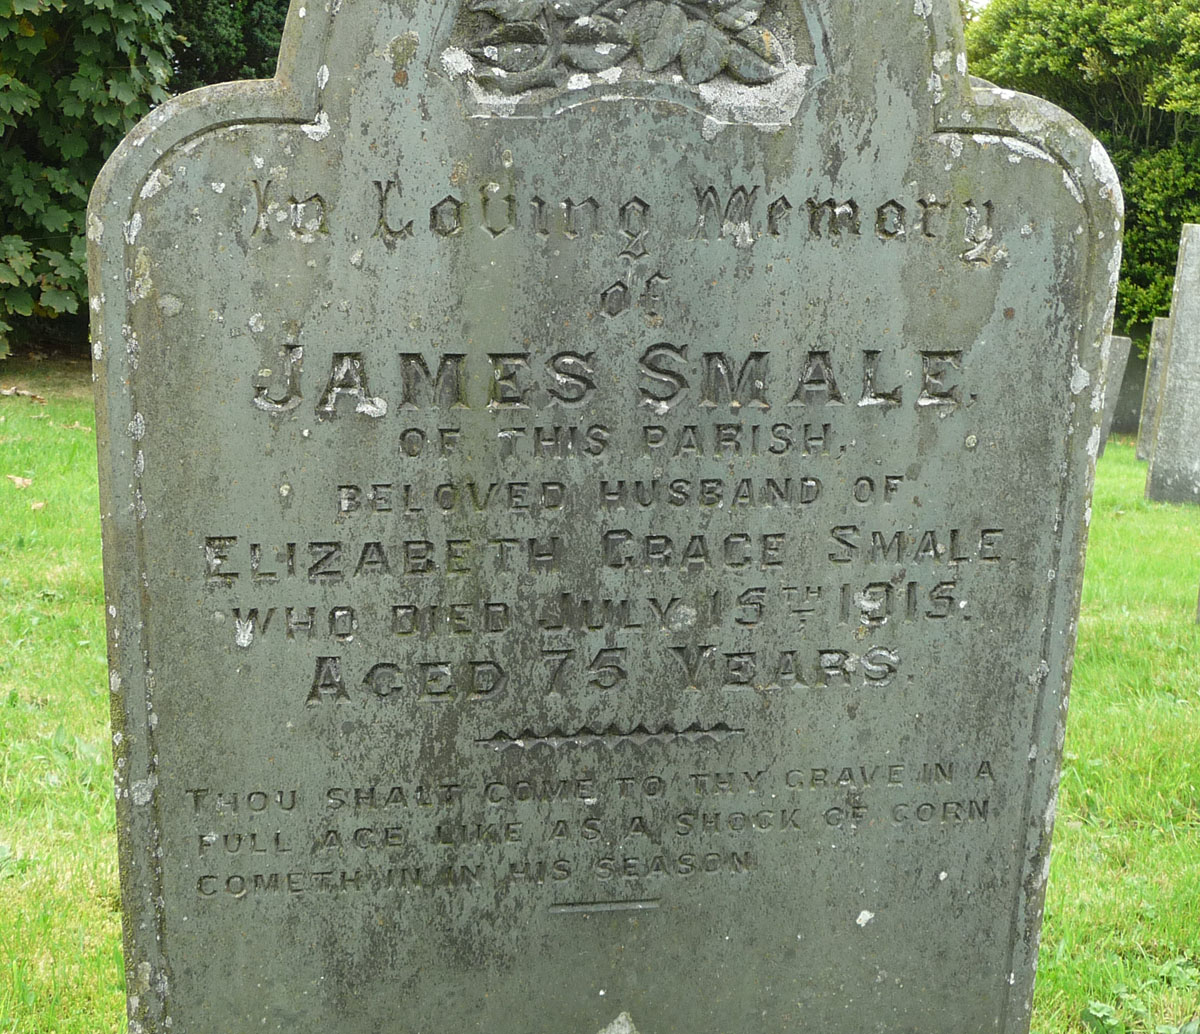 Memorial inscription on the headstone of James Smale (abt. 1840-1915)